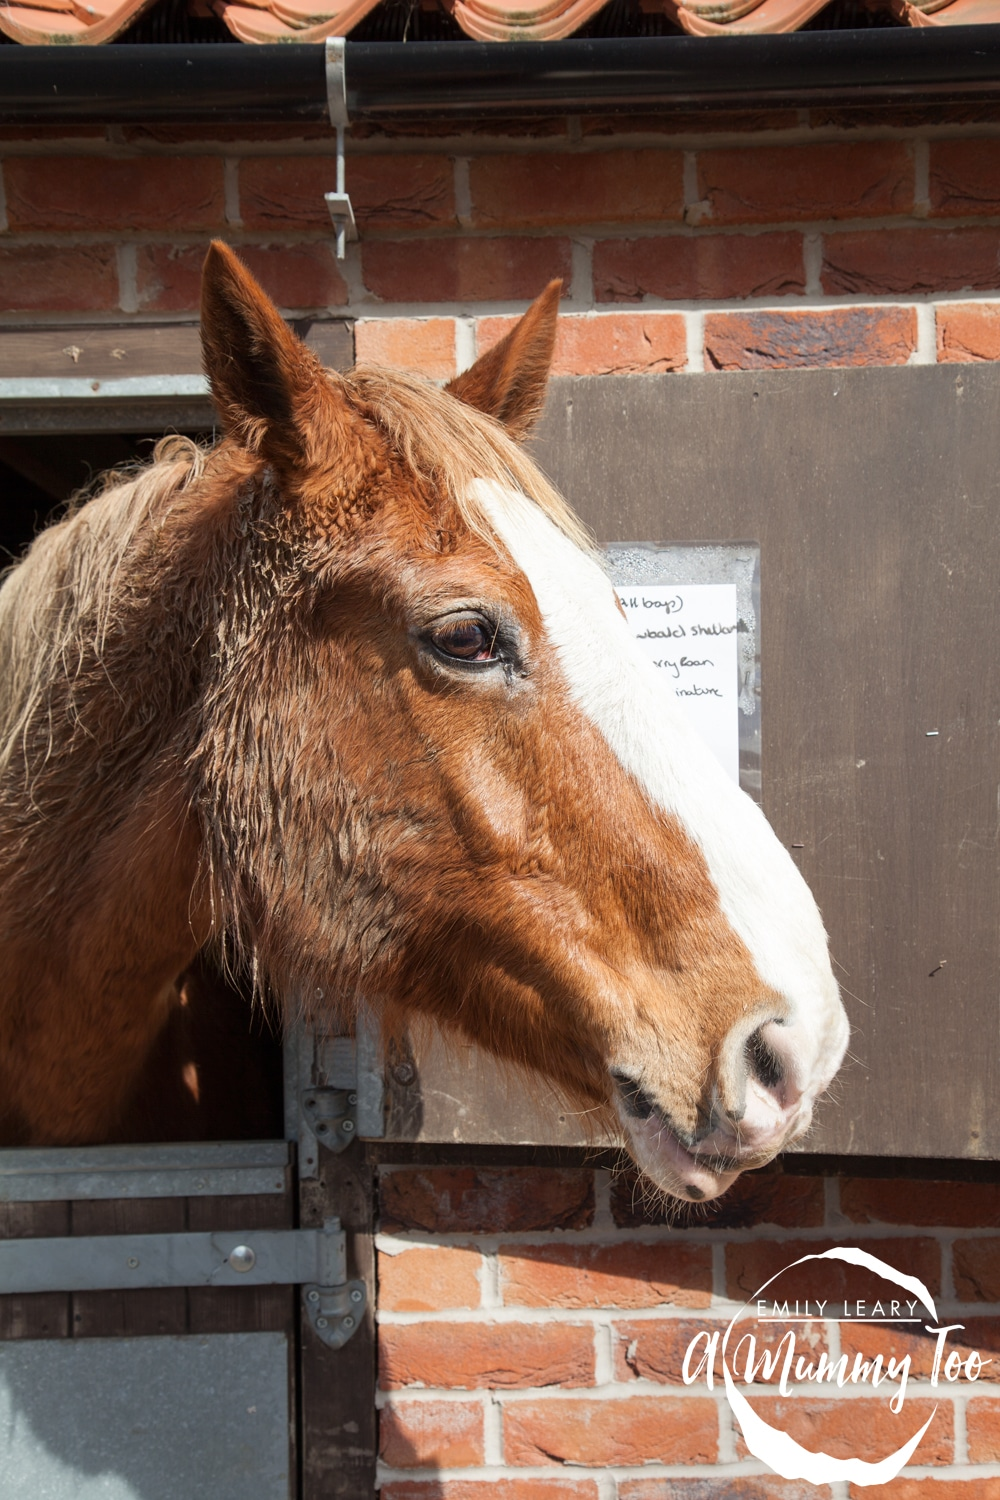 bransby-horse-in-stable